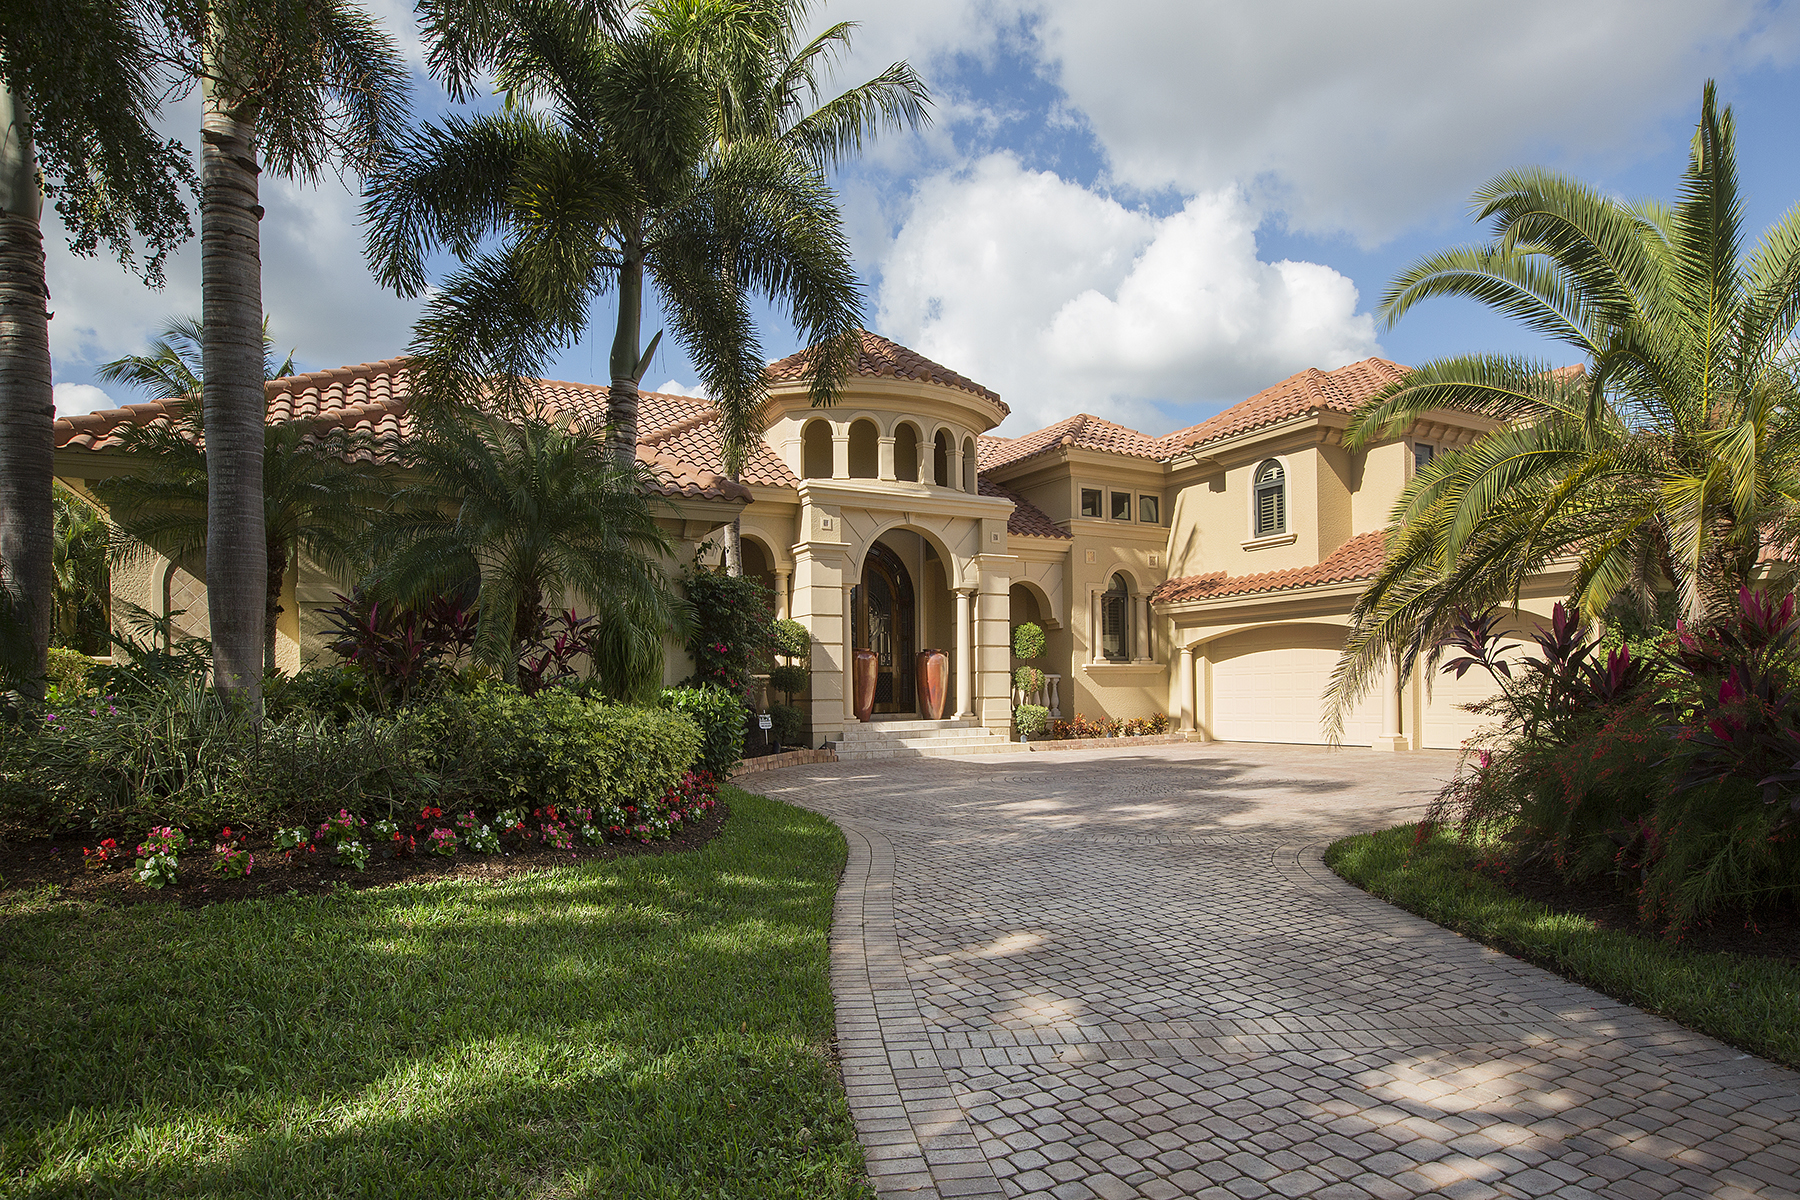 Single Family Home for Sale at THE RESERVE 22080 Reserve Estates Dr, Estero, Florida 34135 United States